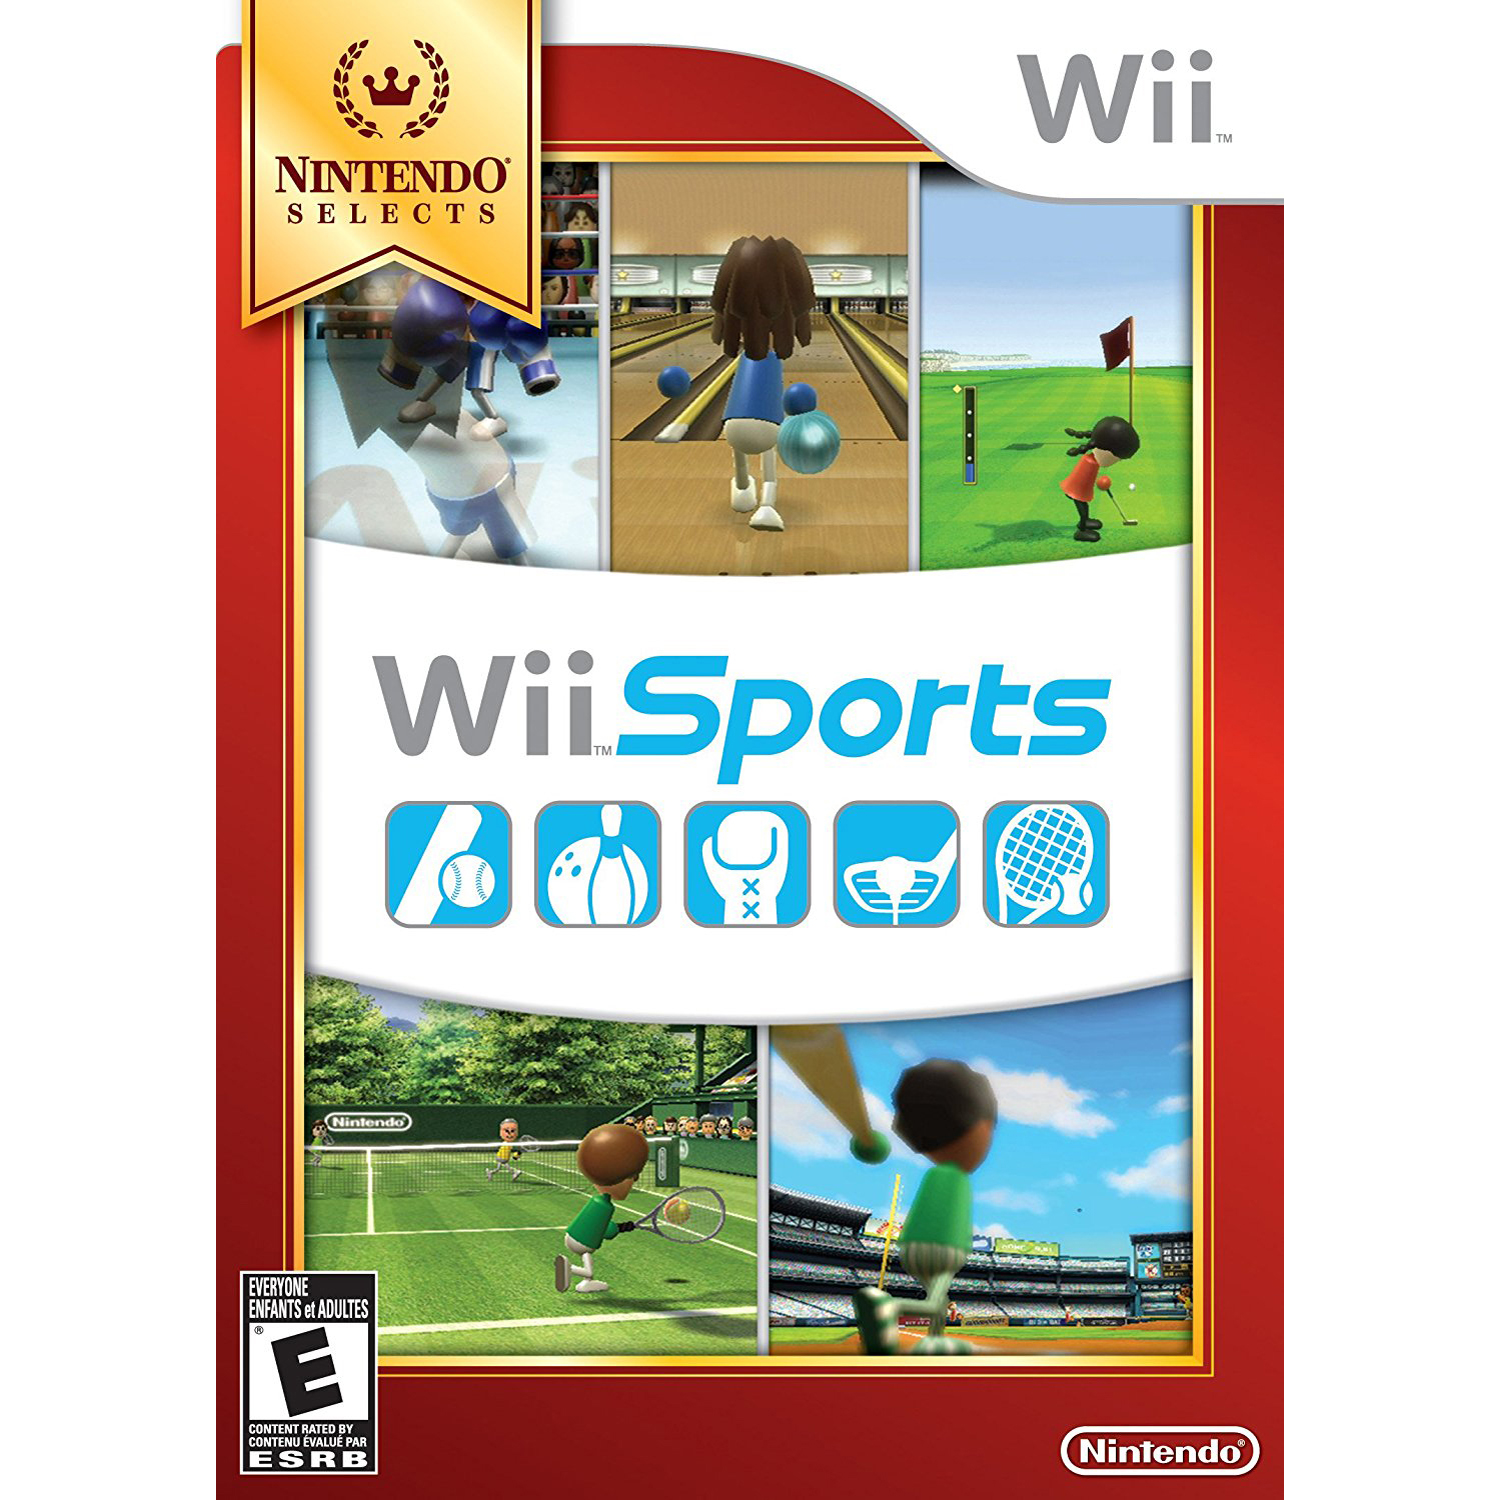 Wii Sports Club - Tennis, Nintendo, WIIU, [Digital Download], 0004549666024